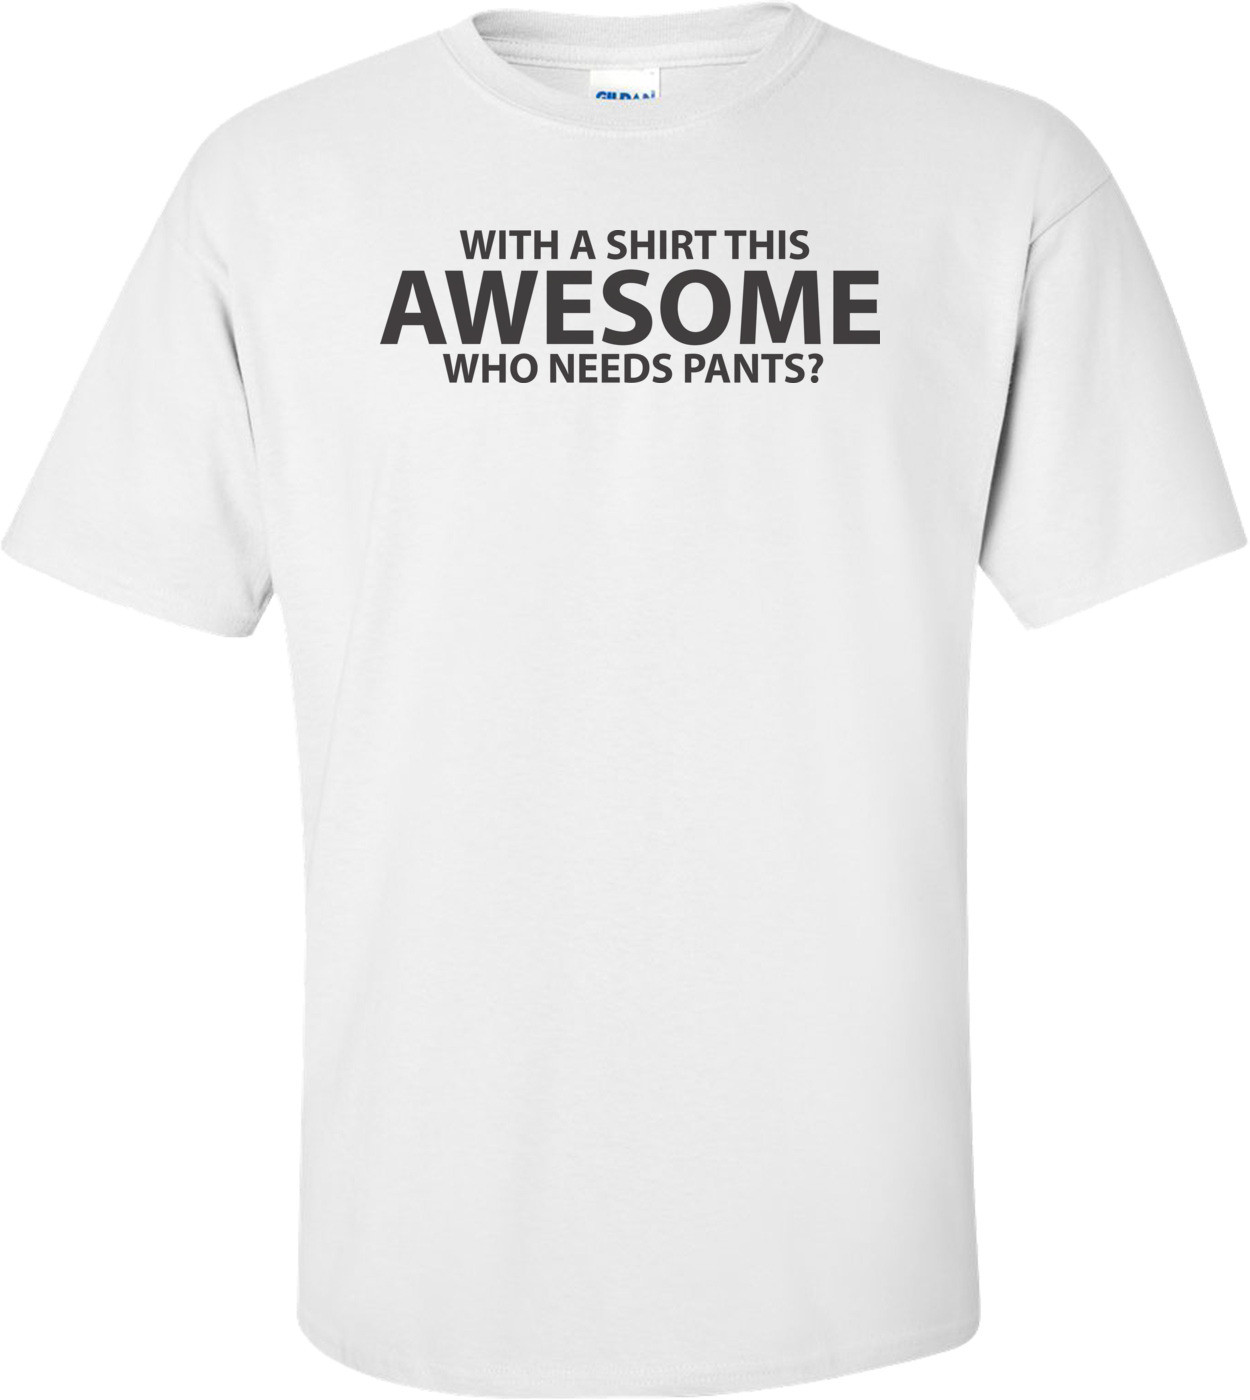 With A Shirt This Awesome, Who Needs Pants? T-shirt